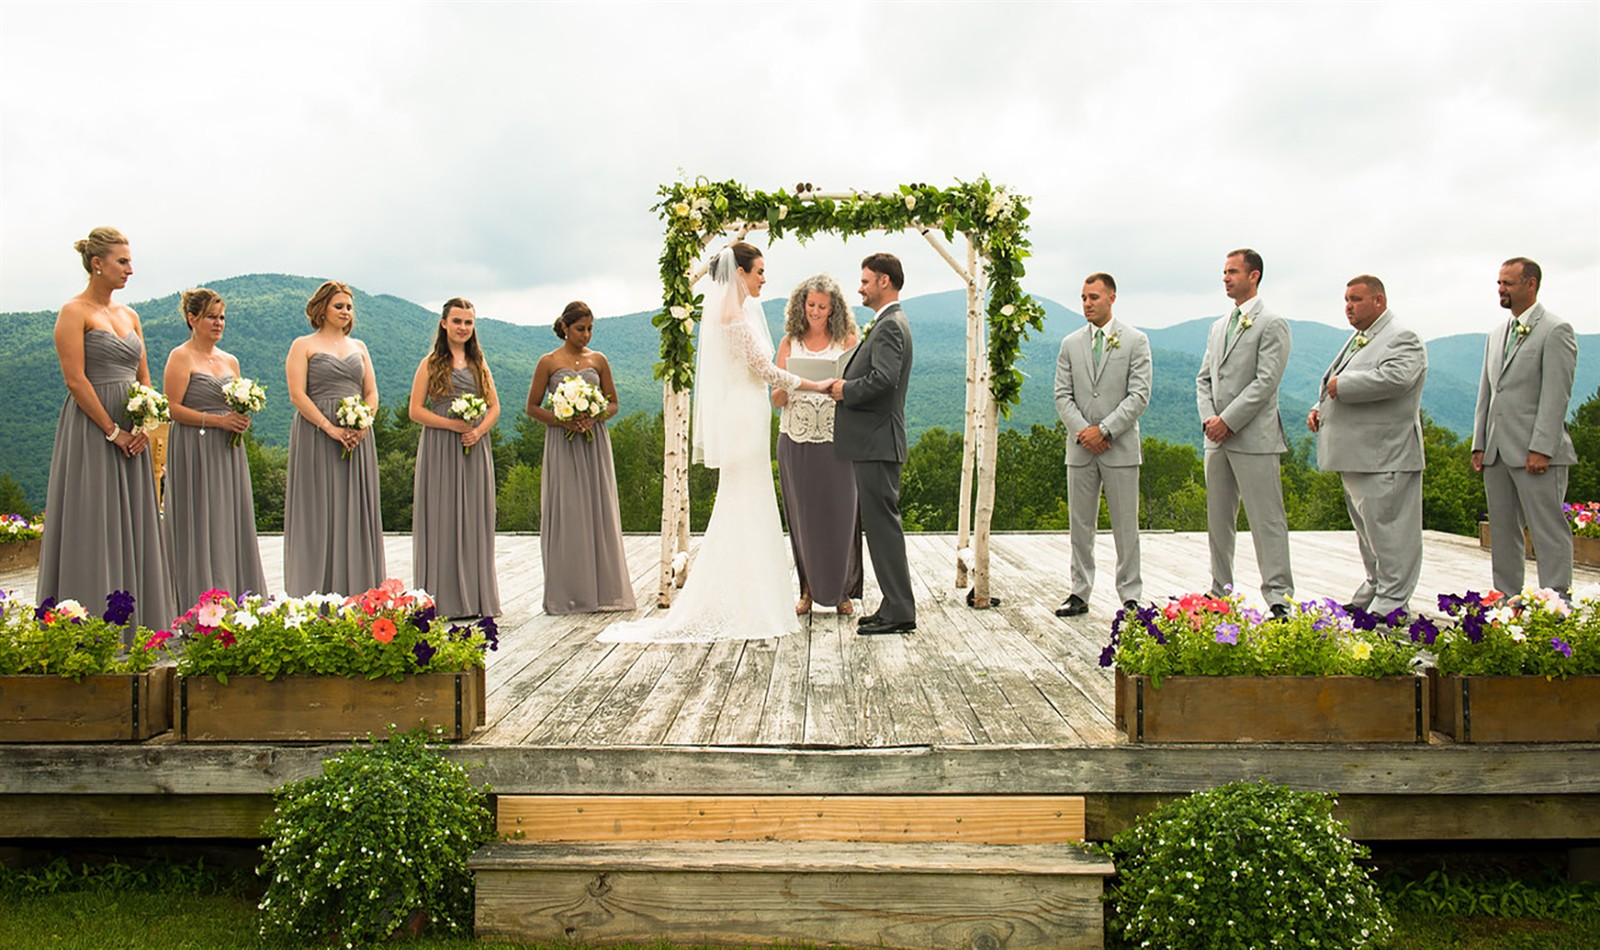 Indoor And Outdoor Ceremony & Reception Space In Stowe, VT